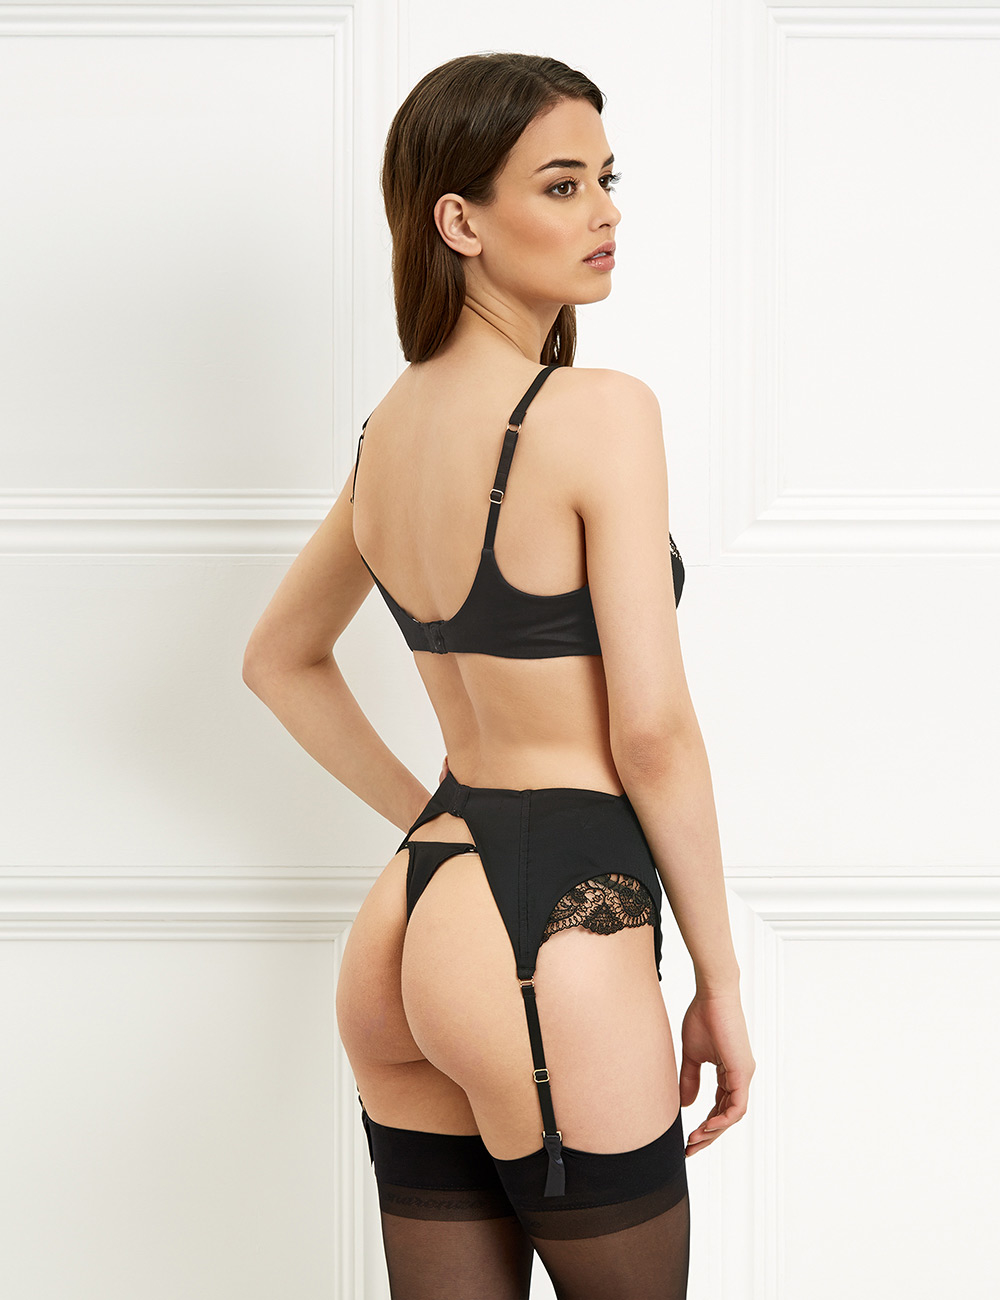 Shop for sexy lingerie at M&S. Order online for home delivery or collect from your nearest store.